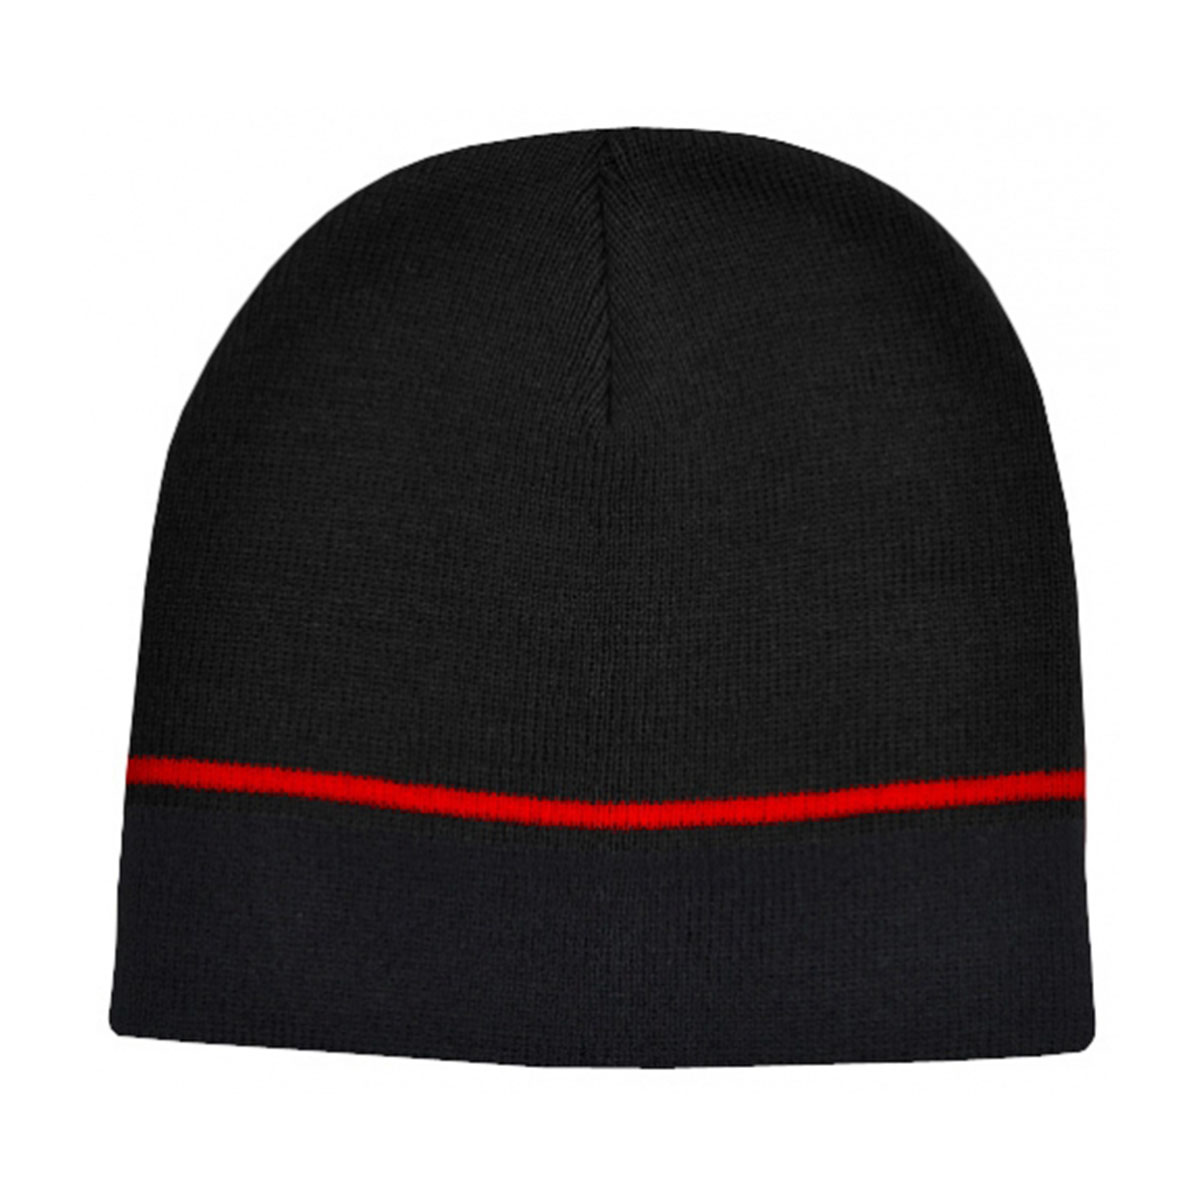 Two-Tone Beanie-Black / Red